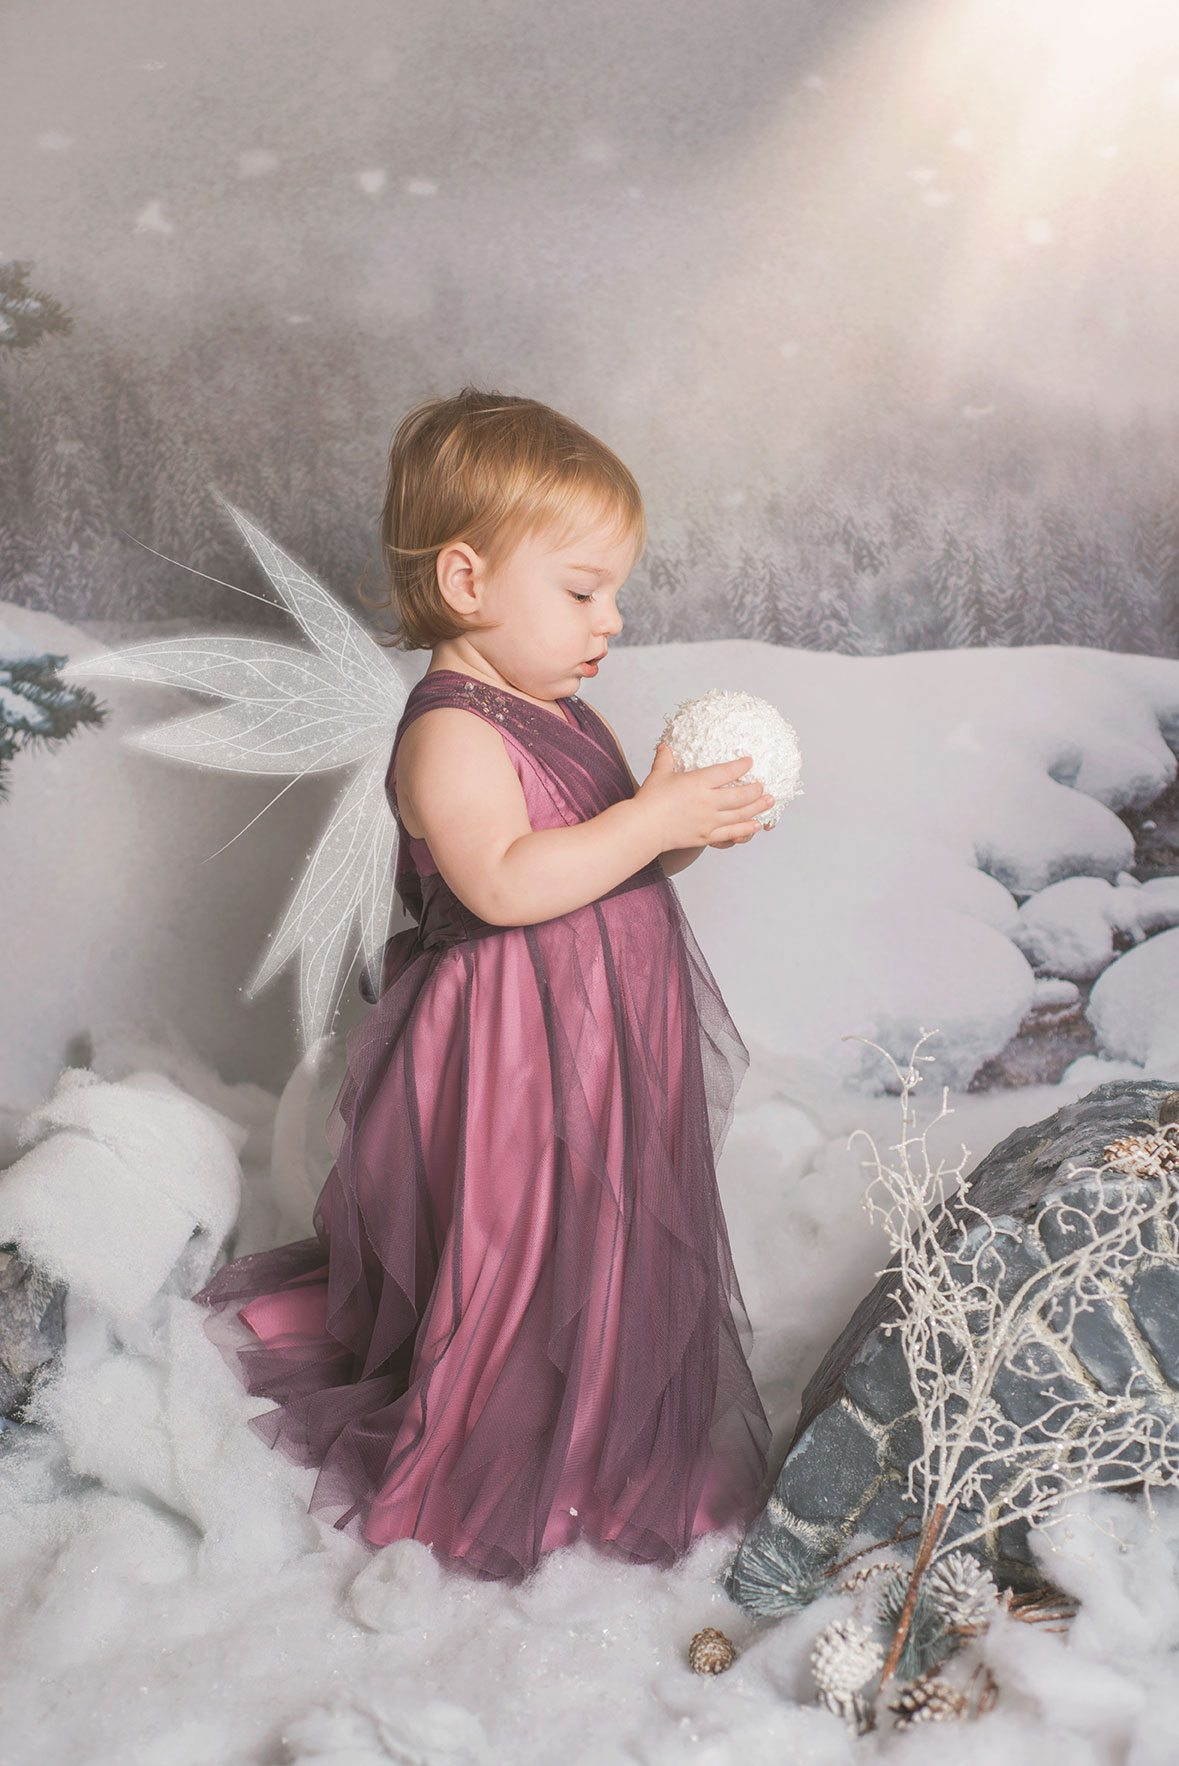 girl in plum dress fairy in the snow photoshoot styled fairy photo sessions - Suffolk and Essex photographer